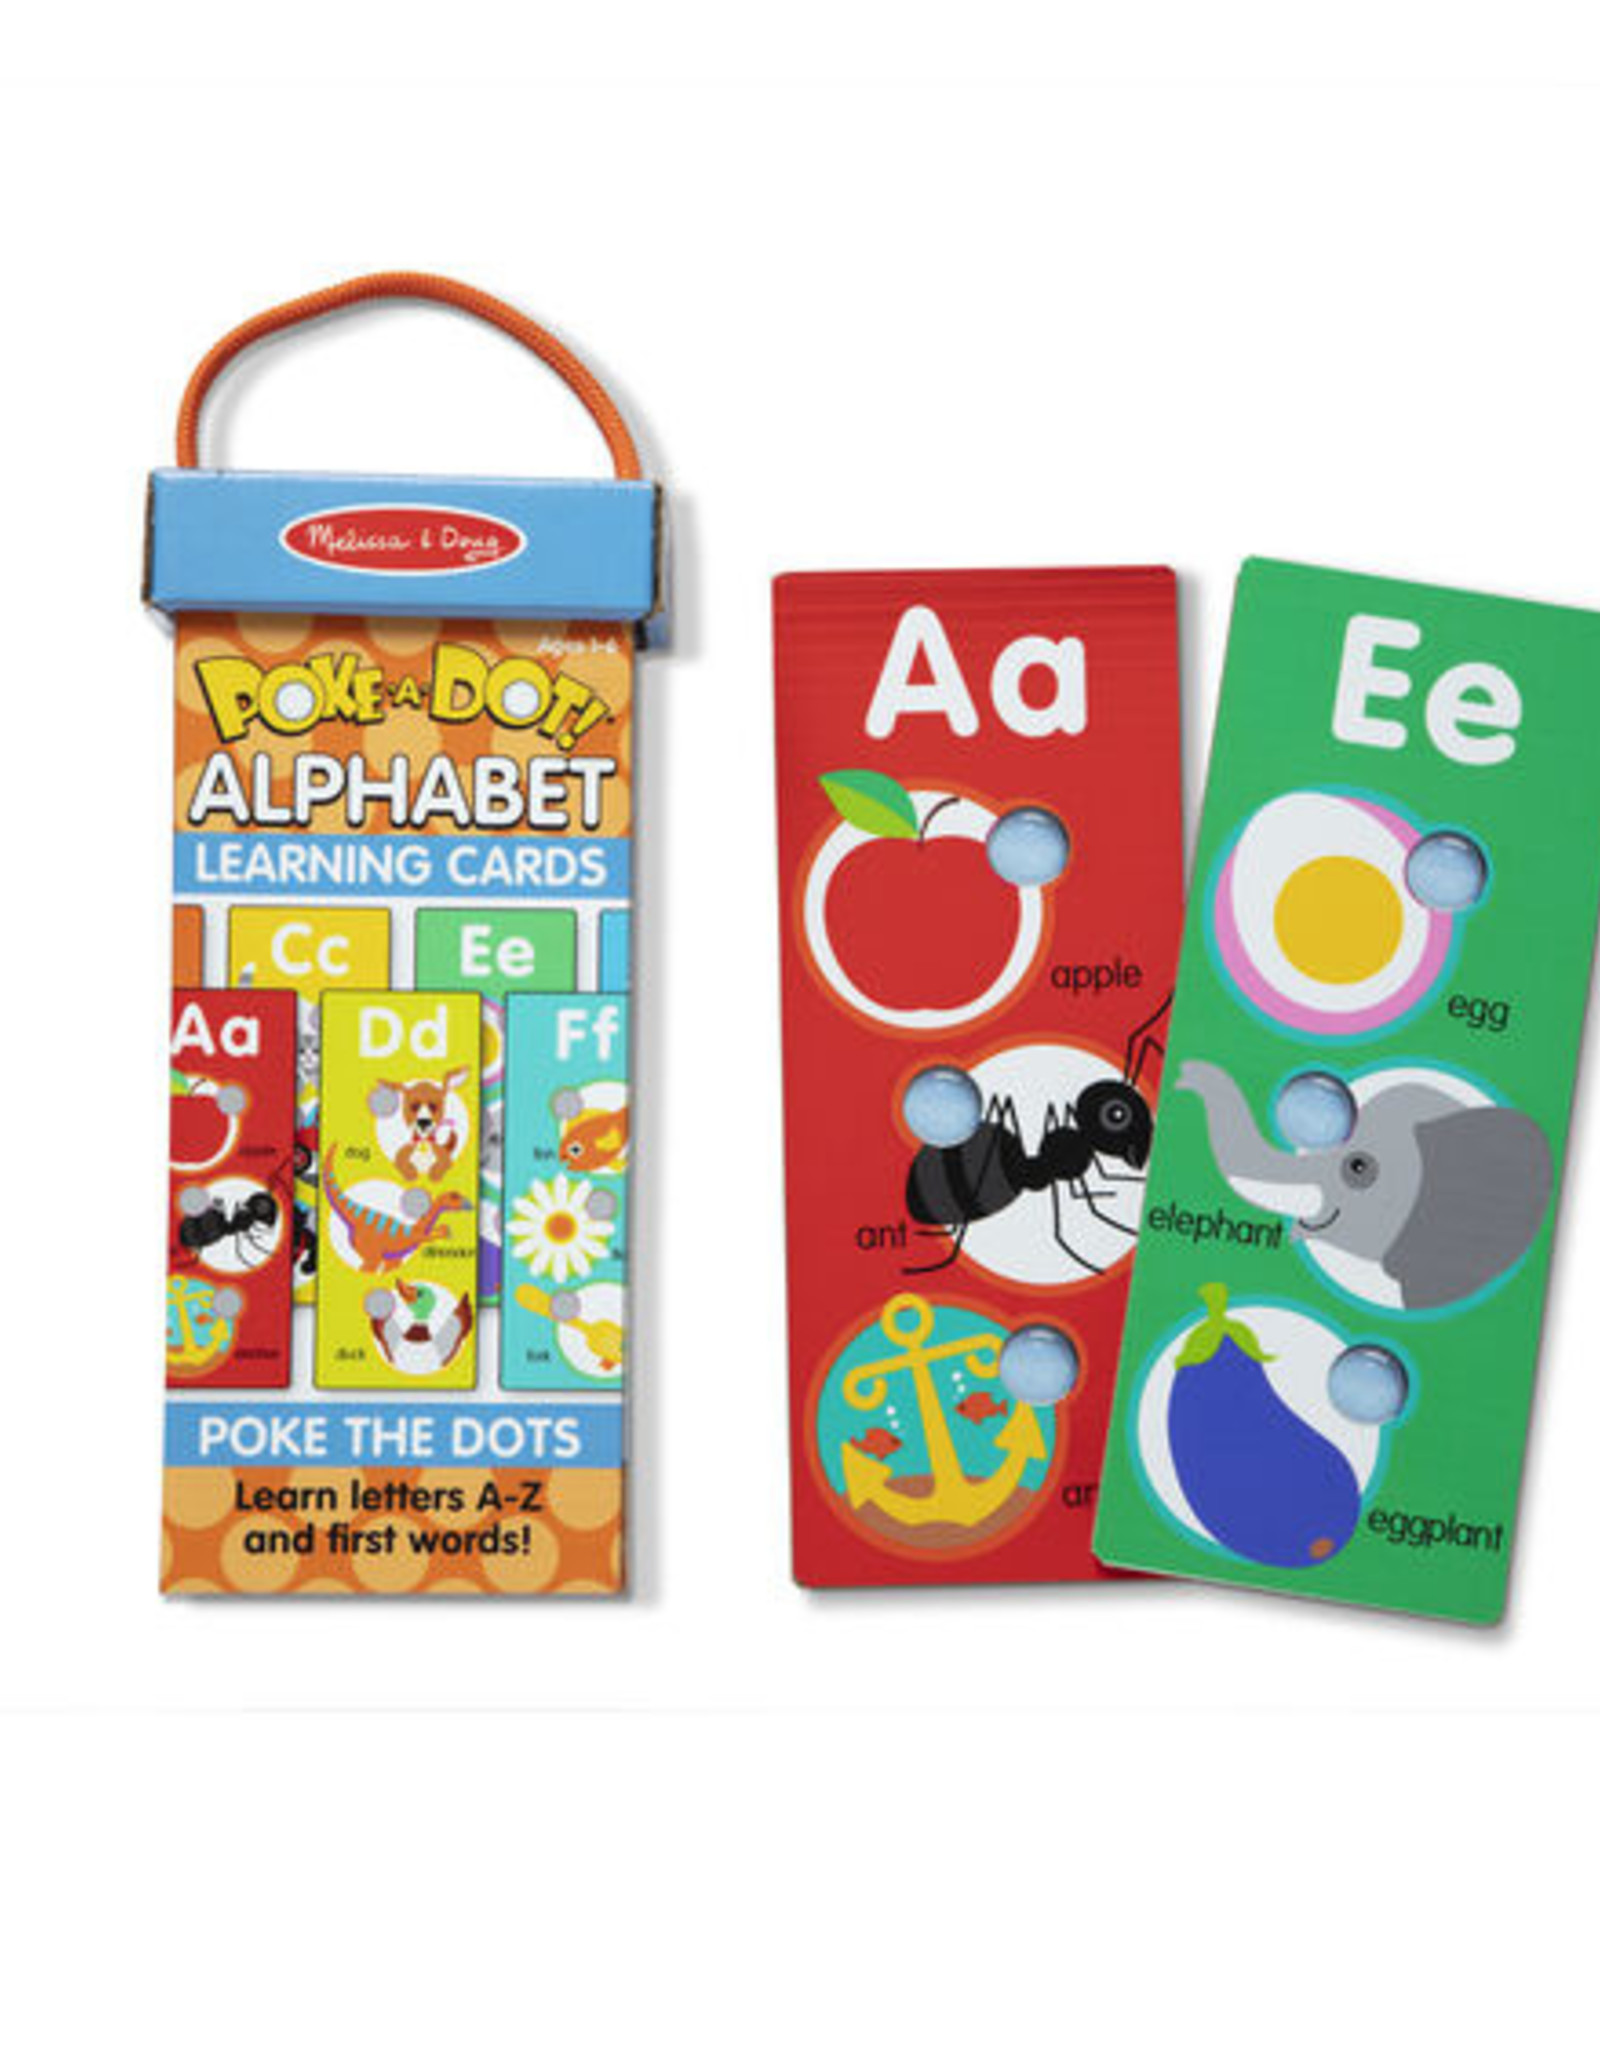 Melissa & Doug Poke-A-Dot Alphabet Learning Cards